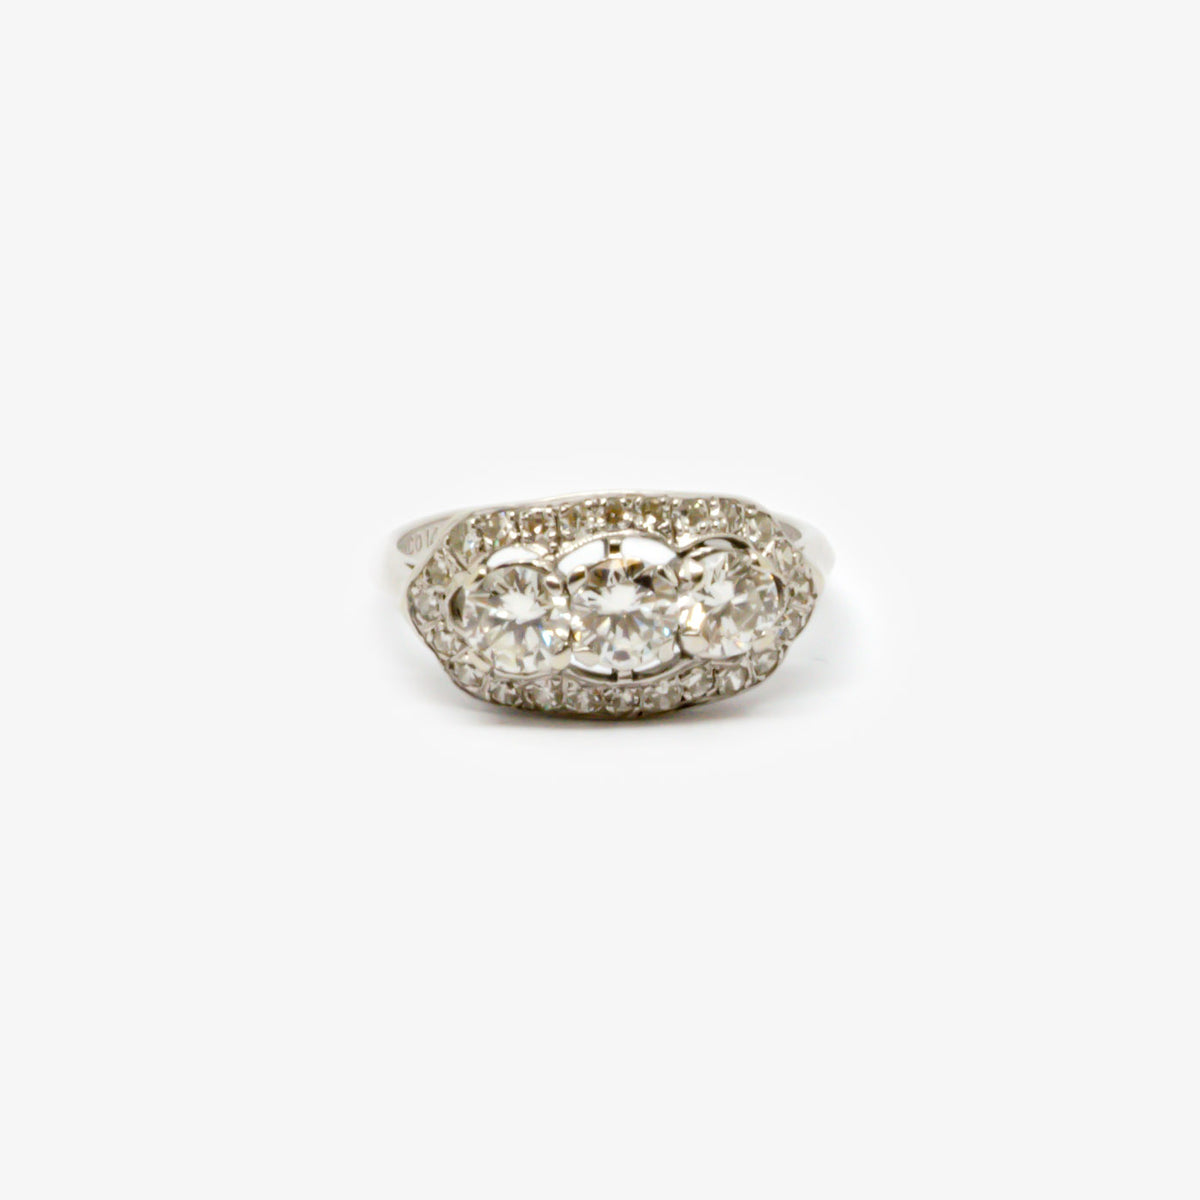 Jordans Jewellers antique 14ct white gold Art Deco three stone diamond halo ring